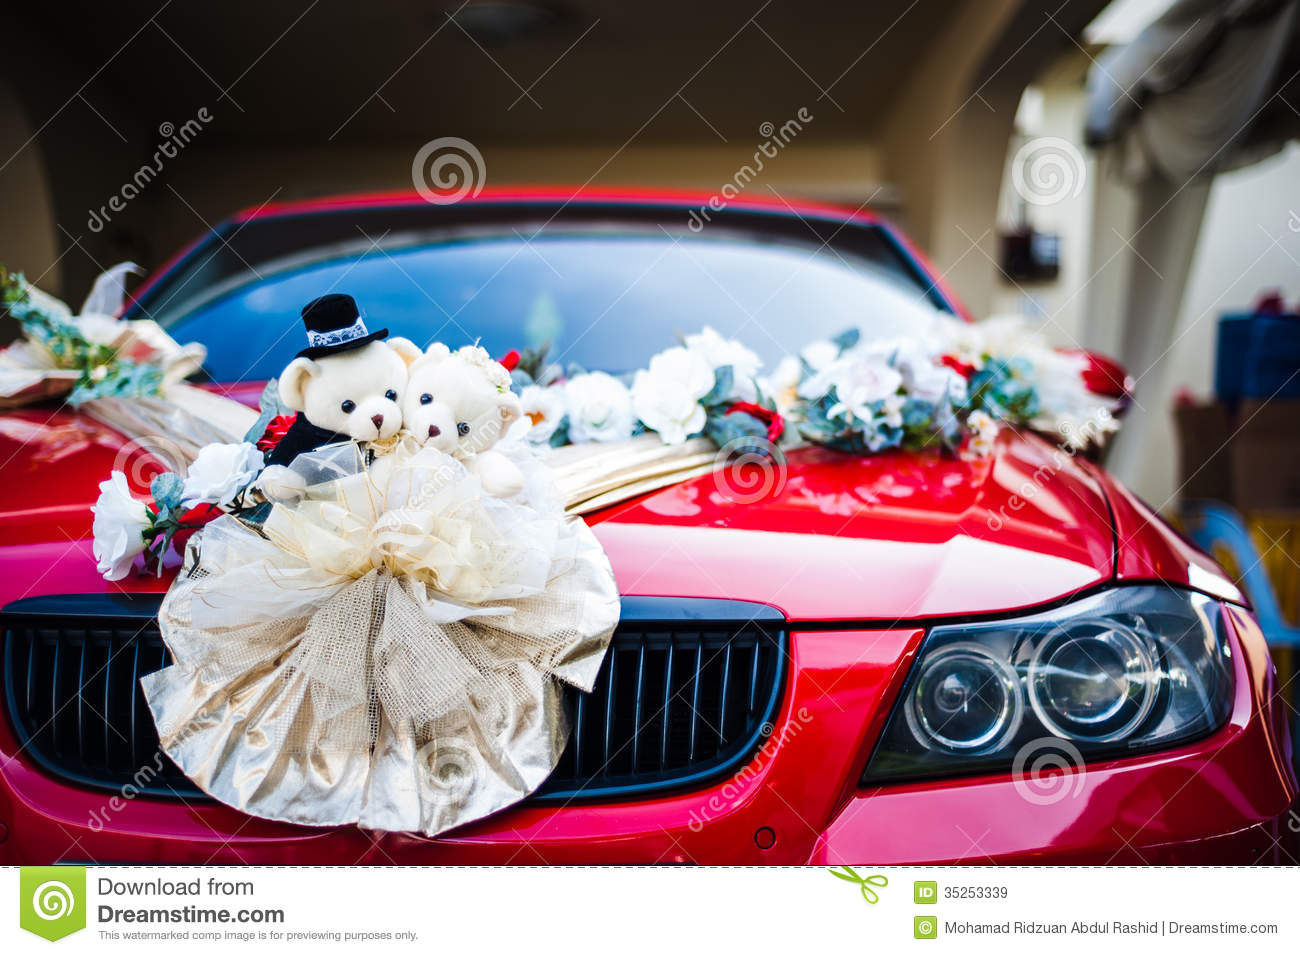 Bear Dolls And Flower Decoration On Car Stock Image